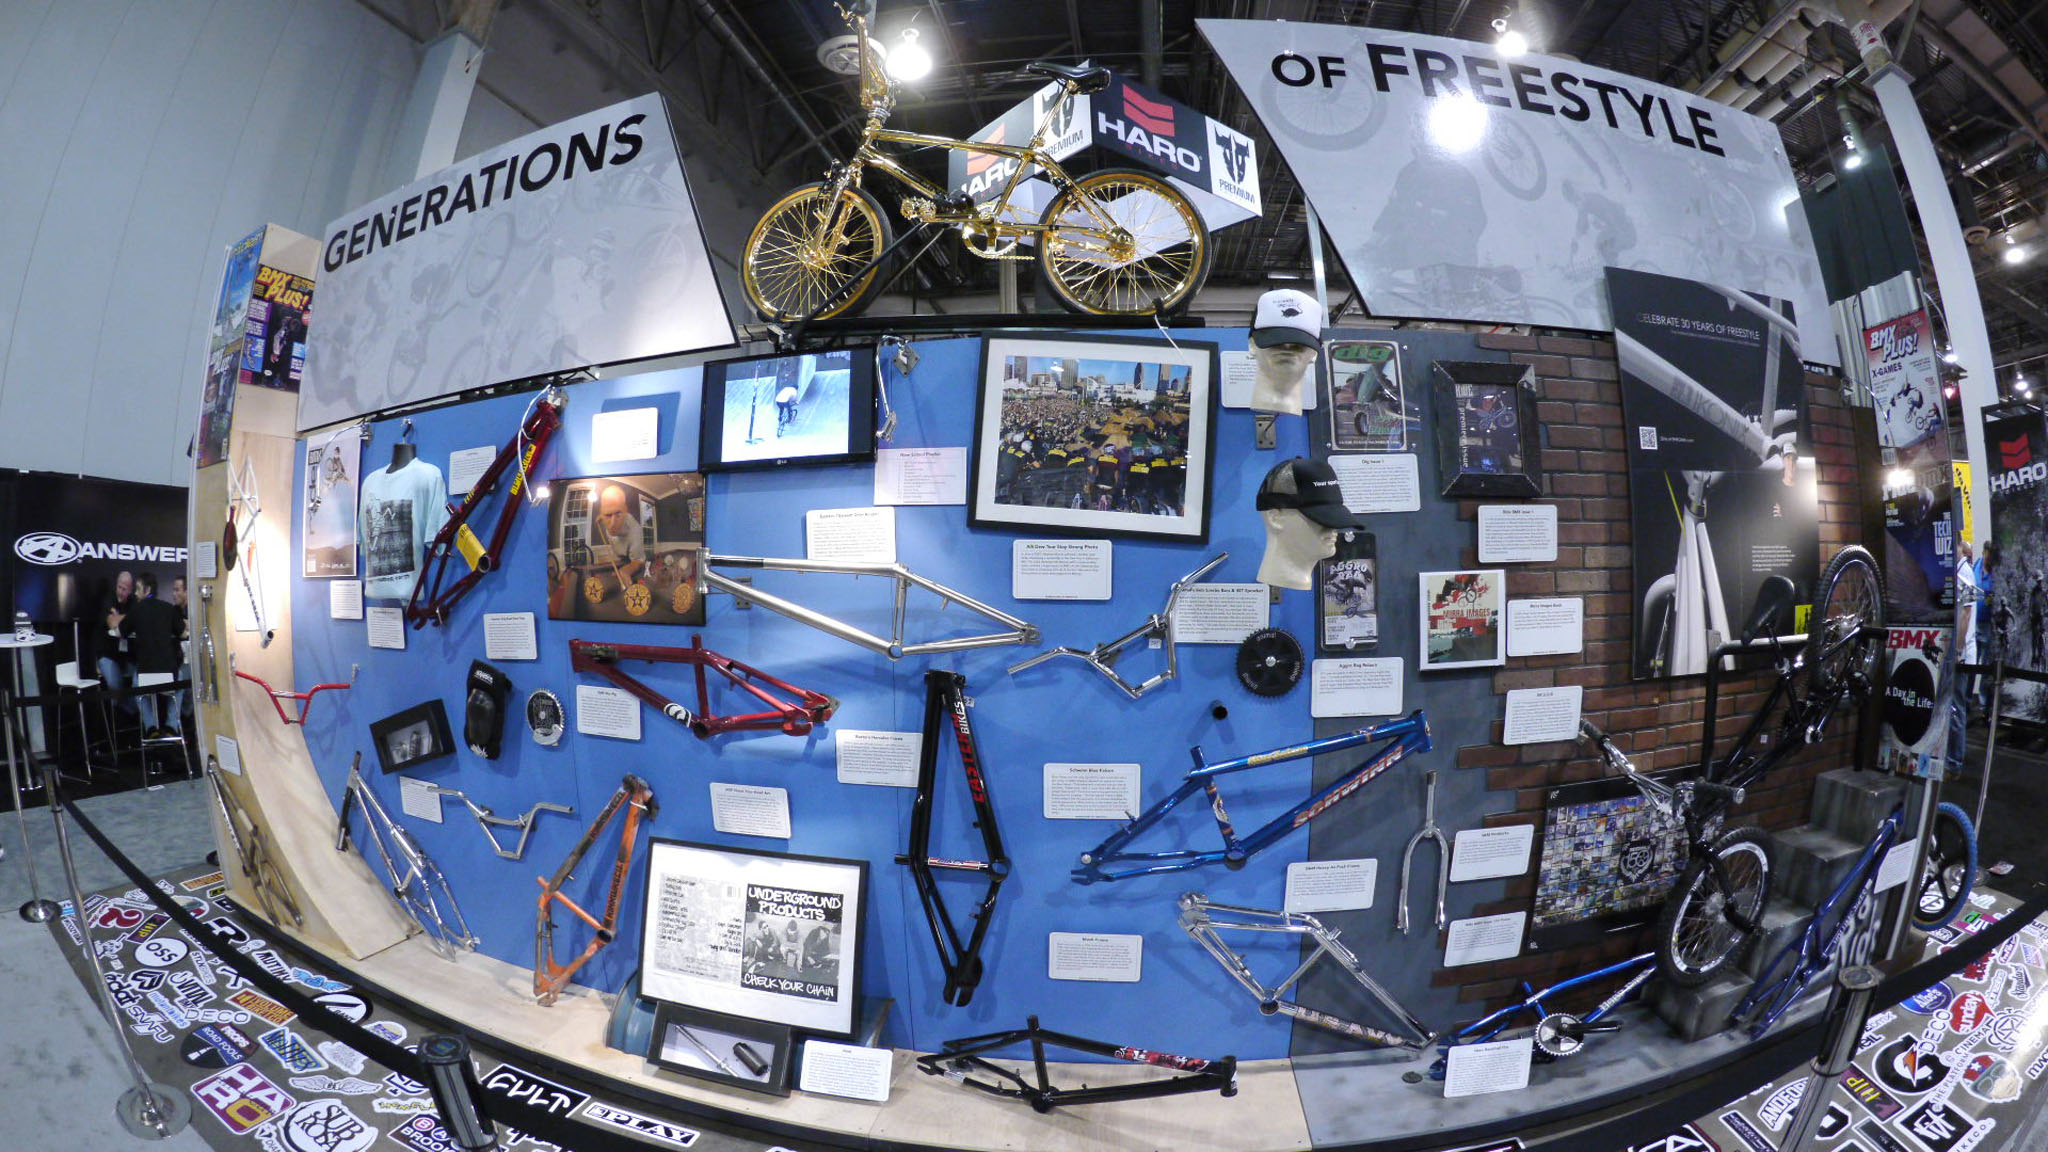 /photo/2012/0919/as_bmx_interbike11_2048.jpg